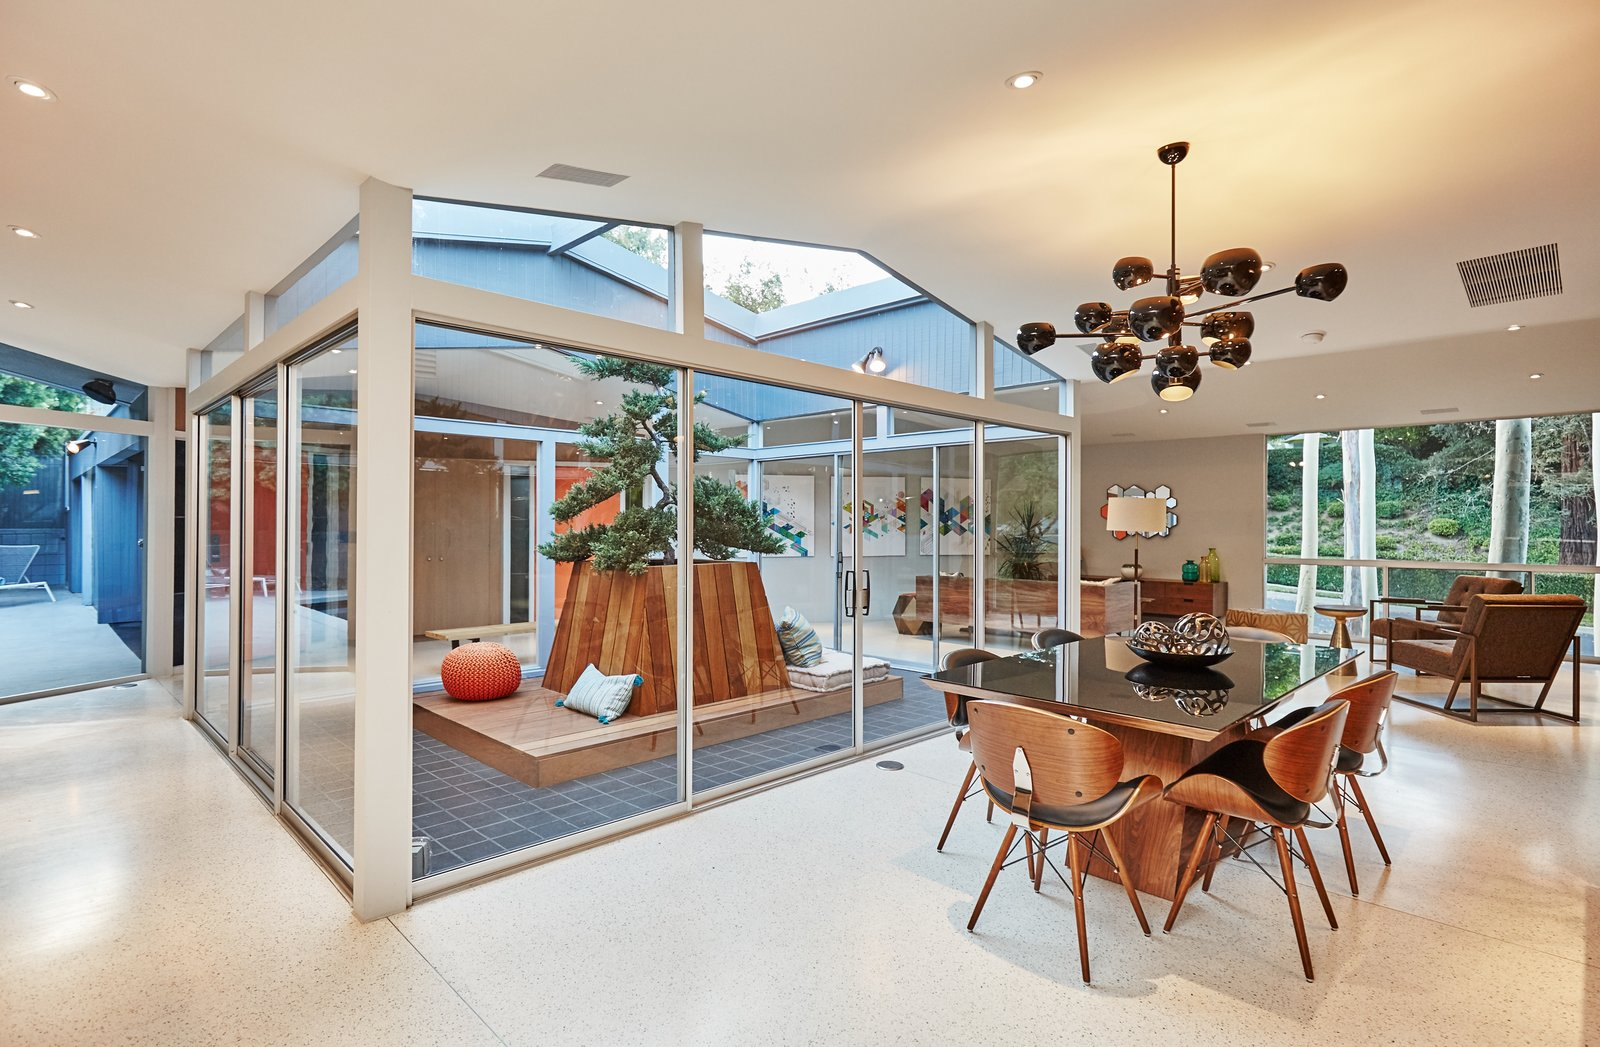 Dining Room, Table, Chair, Pendant Lighting, and Terrazzo Floor  Photo 5 of 10 in A Hexagonal Midcentury Residence in Southern California Offered at $2.89M